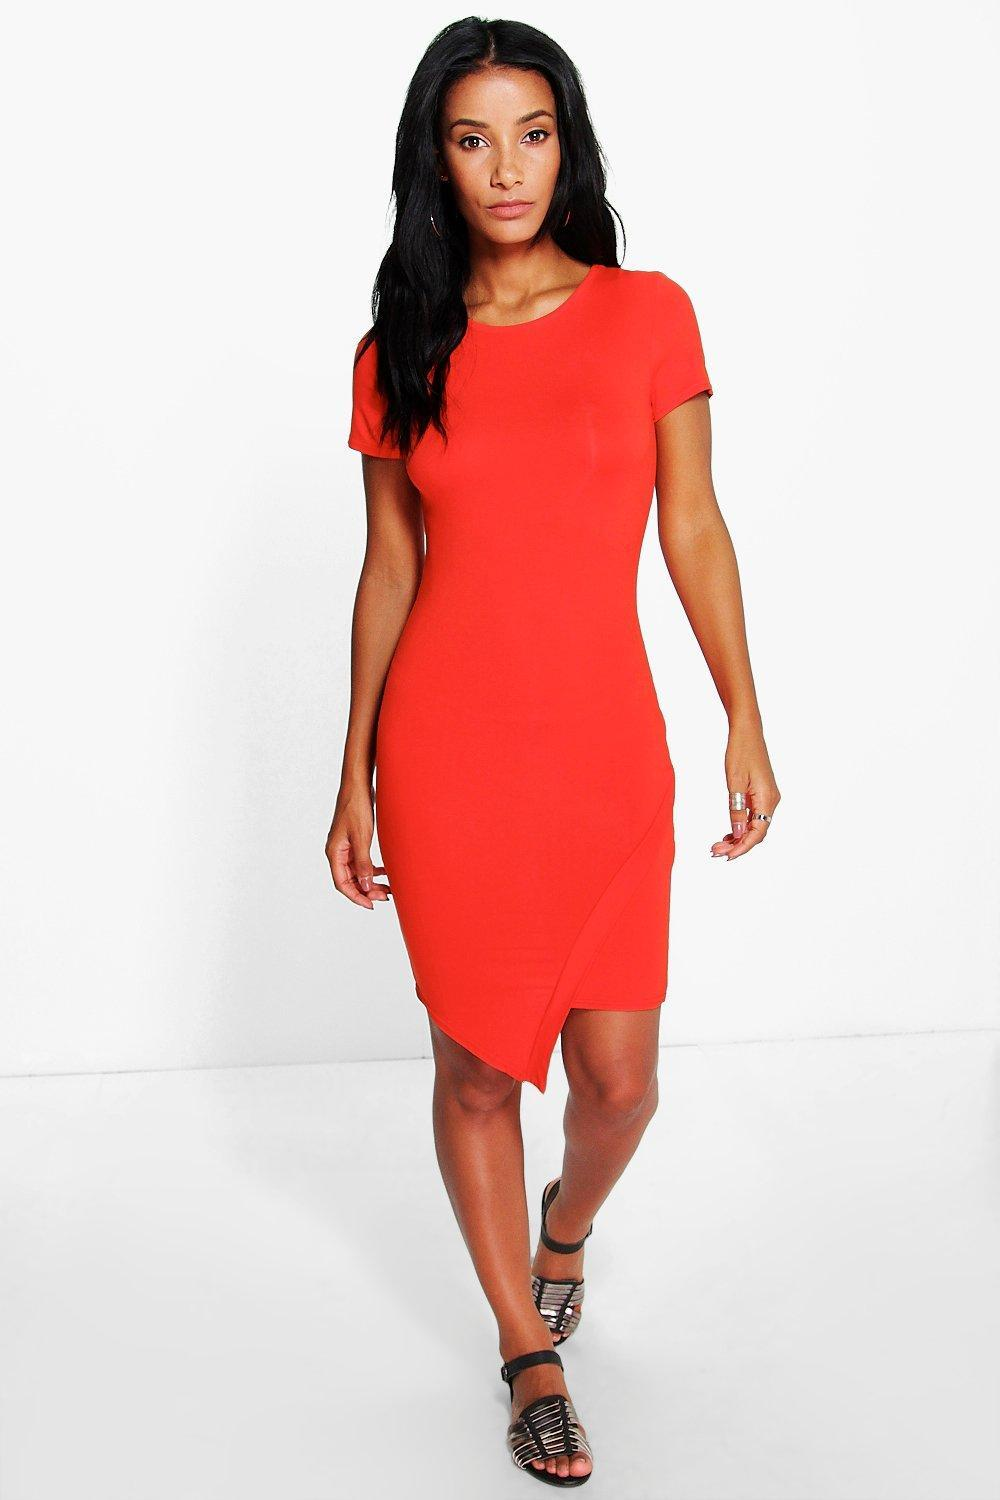 Asymetic Bodycon Dress Orange - neckline: round neck; fit: tight; pattern: plain; style: bodycon; predominant colour: bright orange; occasions: evening; length: just above the knee; fibres: viscose/rayon - stretch; sleeve length: short sleeve; sleeve style: standard; texture group: jersey - clingy; pattern type: fabric; season: s/s 2016; wardrobe: event